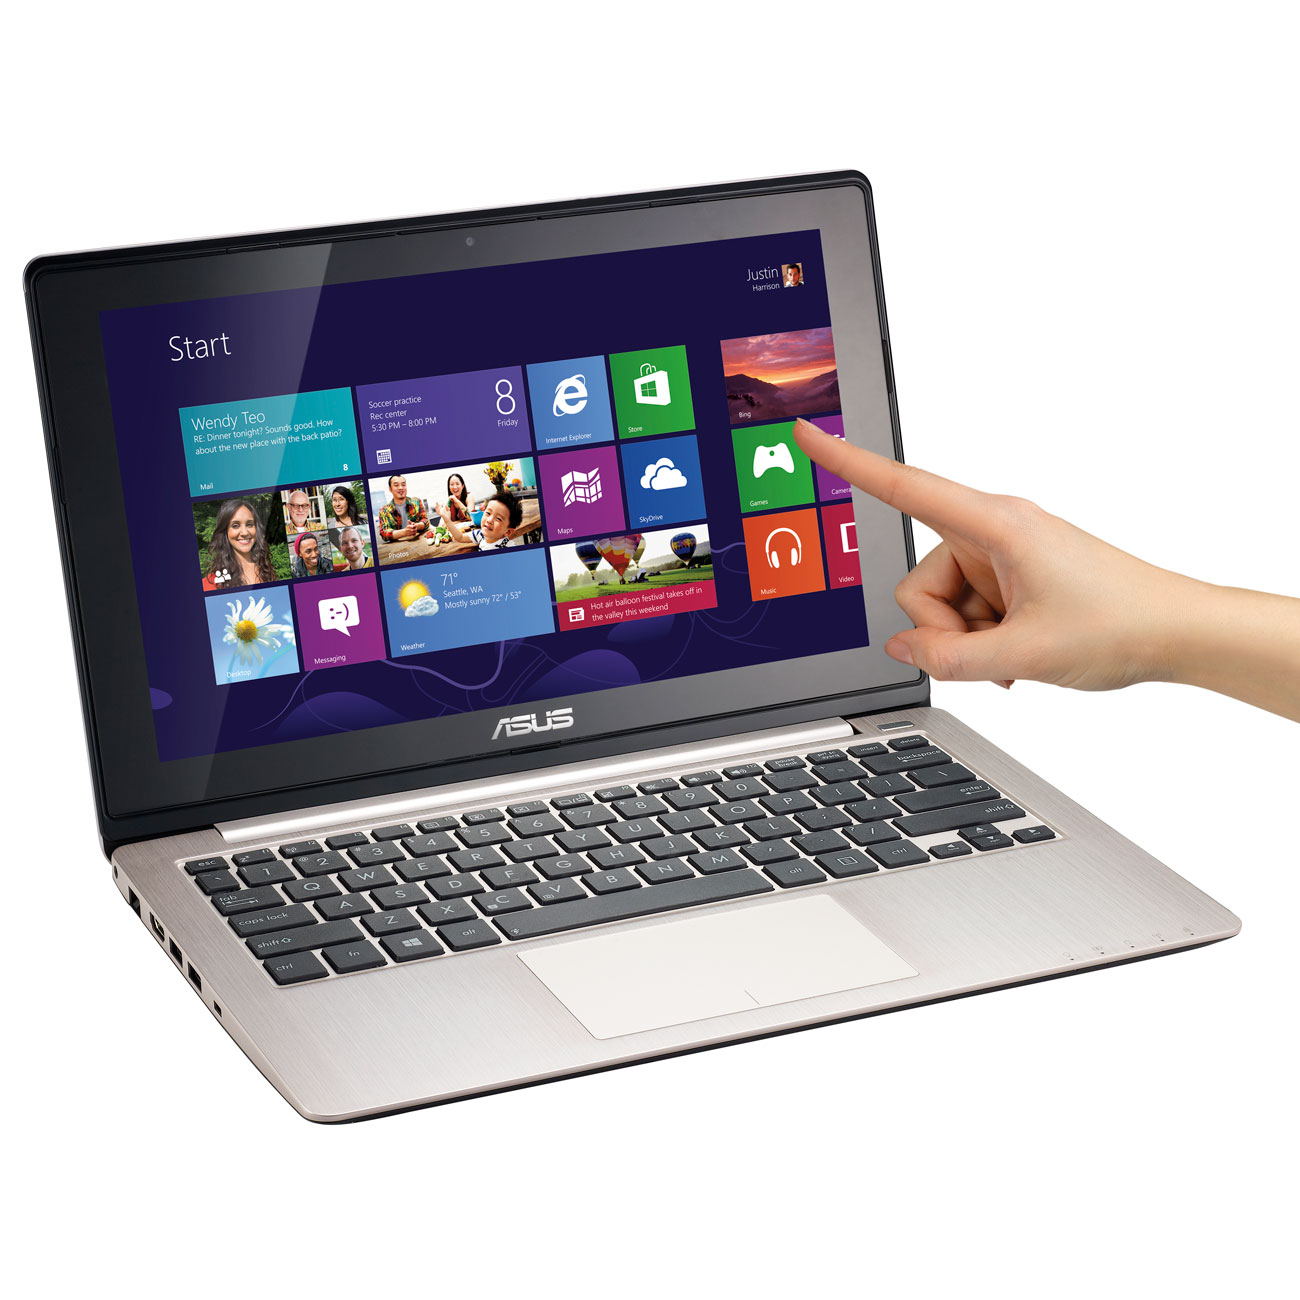 asus vivobook s200e ct162h pc portable asus sur ldlc. Black Bedroom Furniture Sets. Home Design Ideas